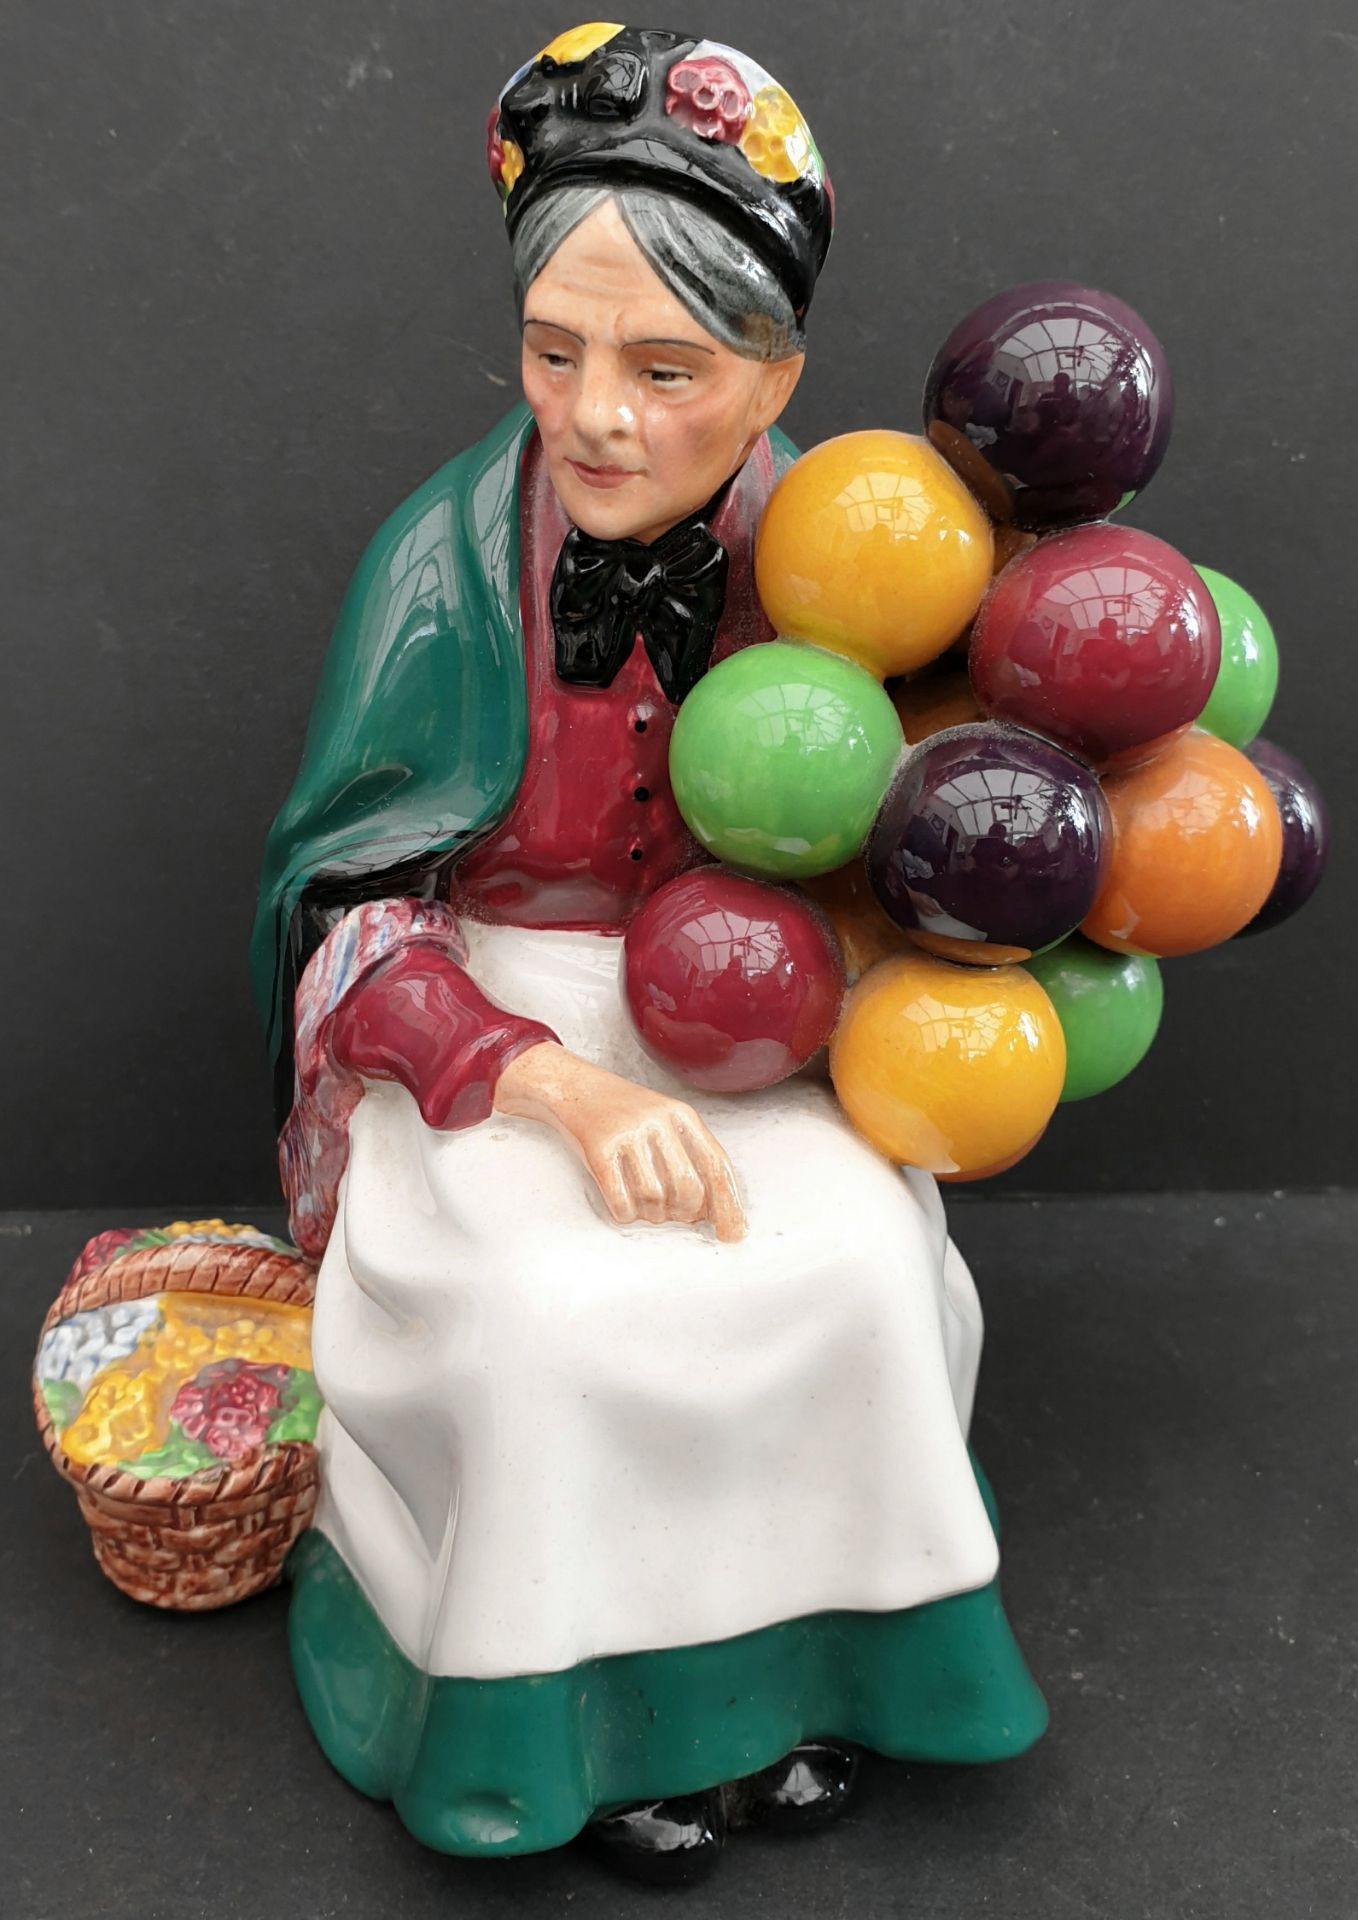 Lot 27 - Antique Vintage Royal Doulton Figure 'The Old Balloon Seller' HN 4315